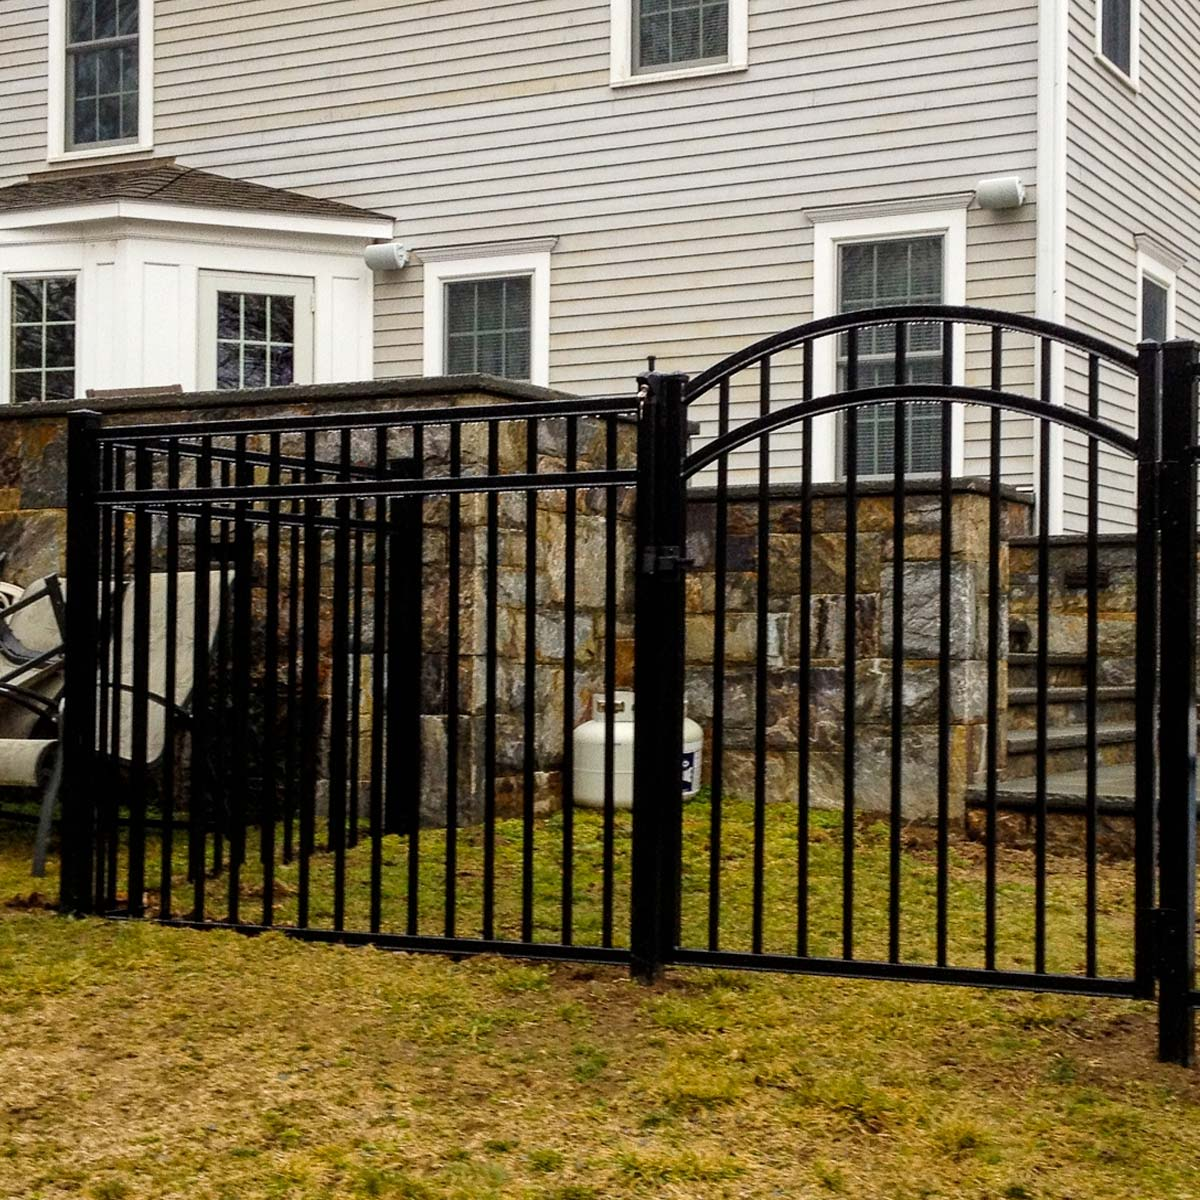 https://www.speedyvinylfencing.com/wp-content/uploads/2019/12/SVF-Services-Metal.jpg